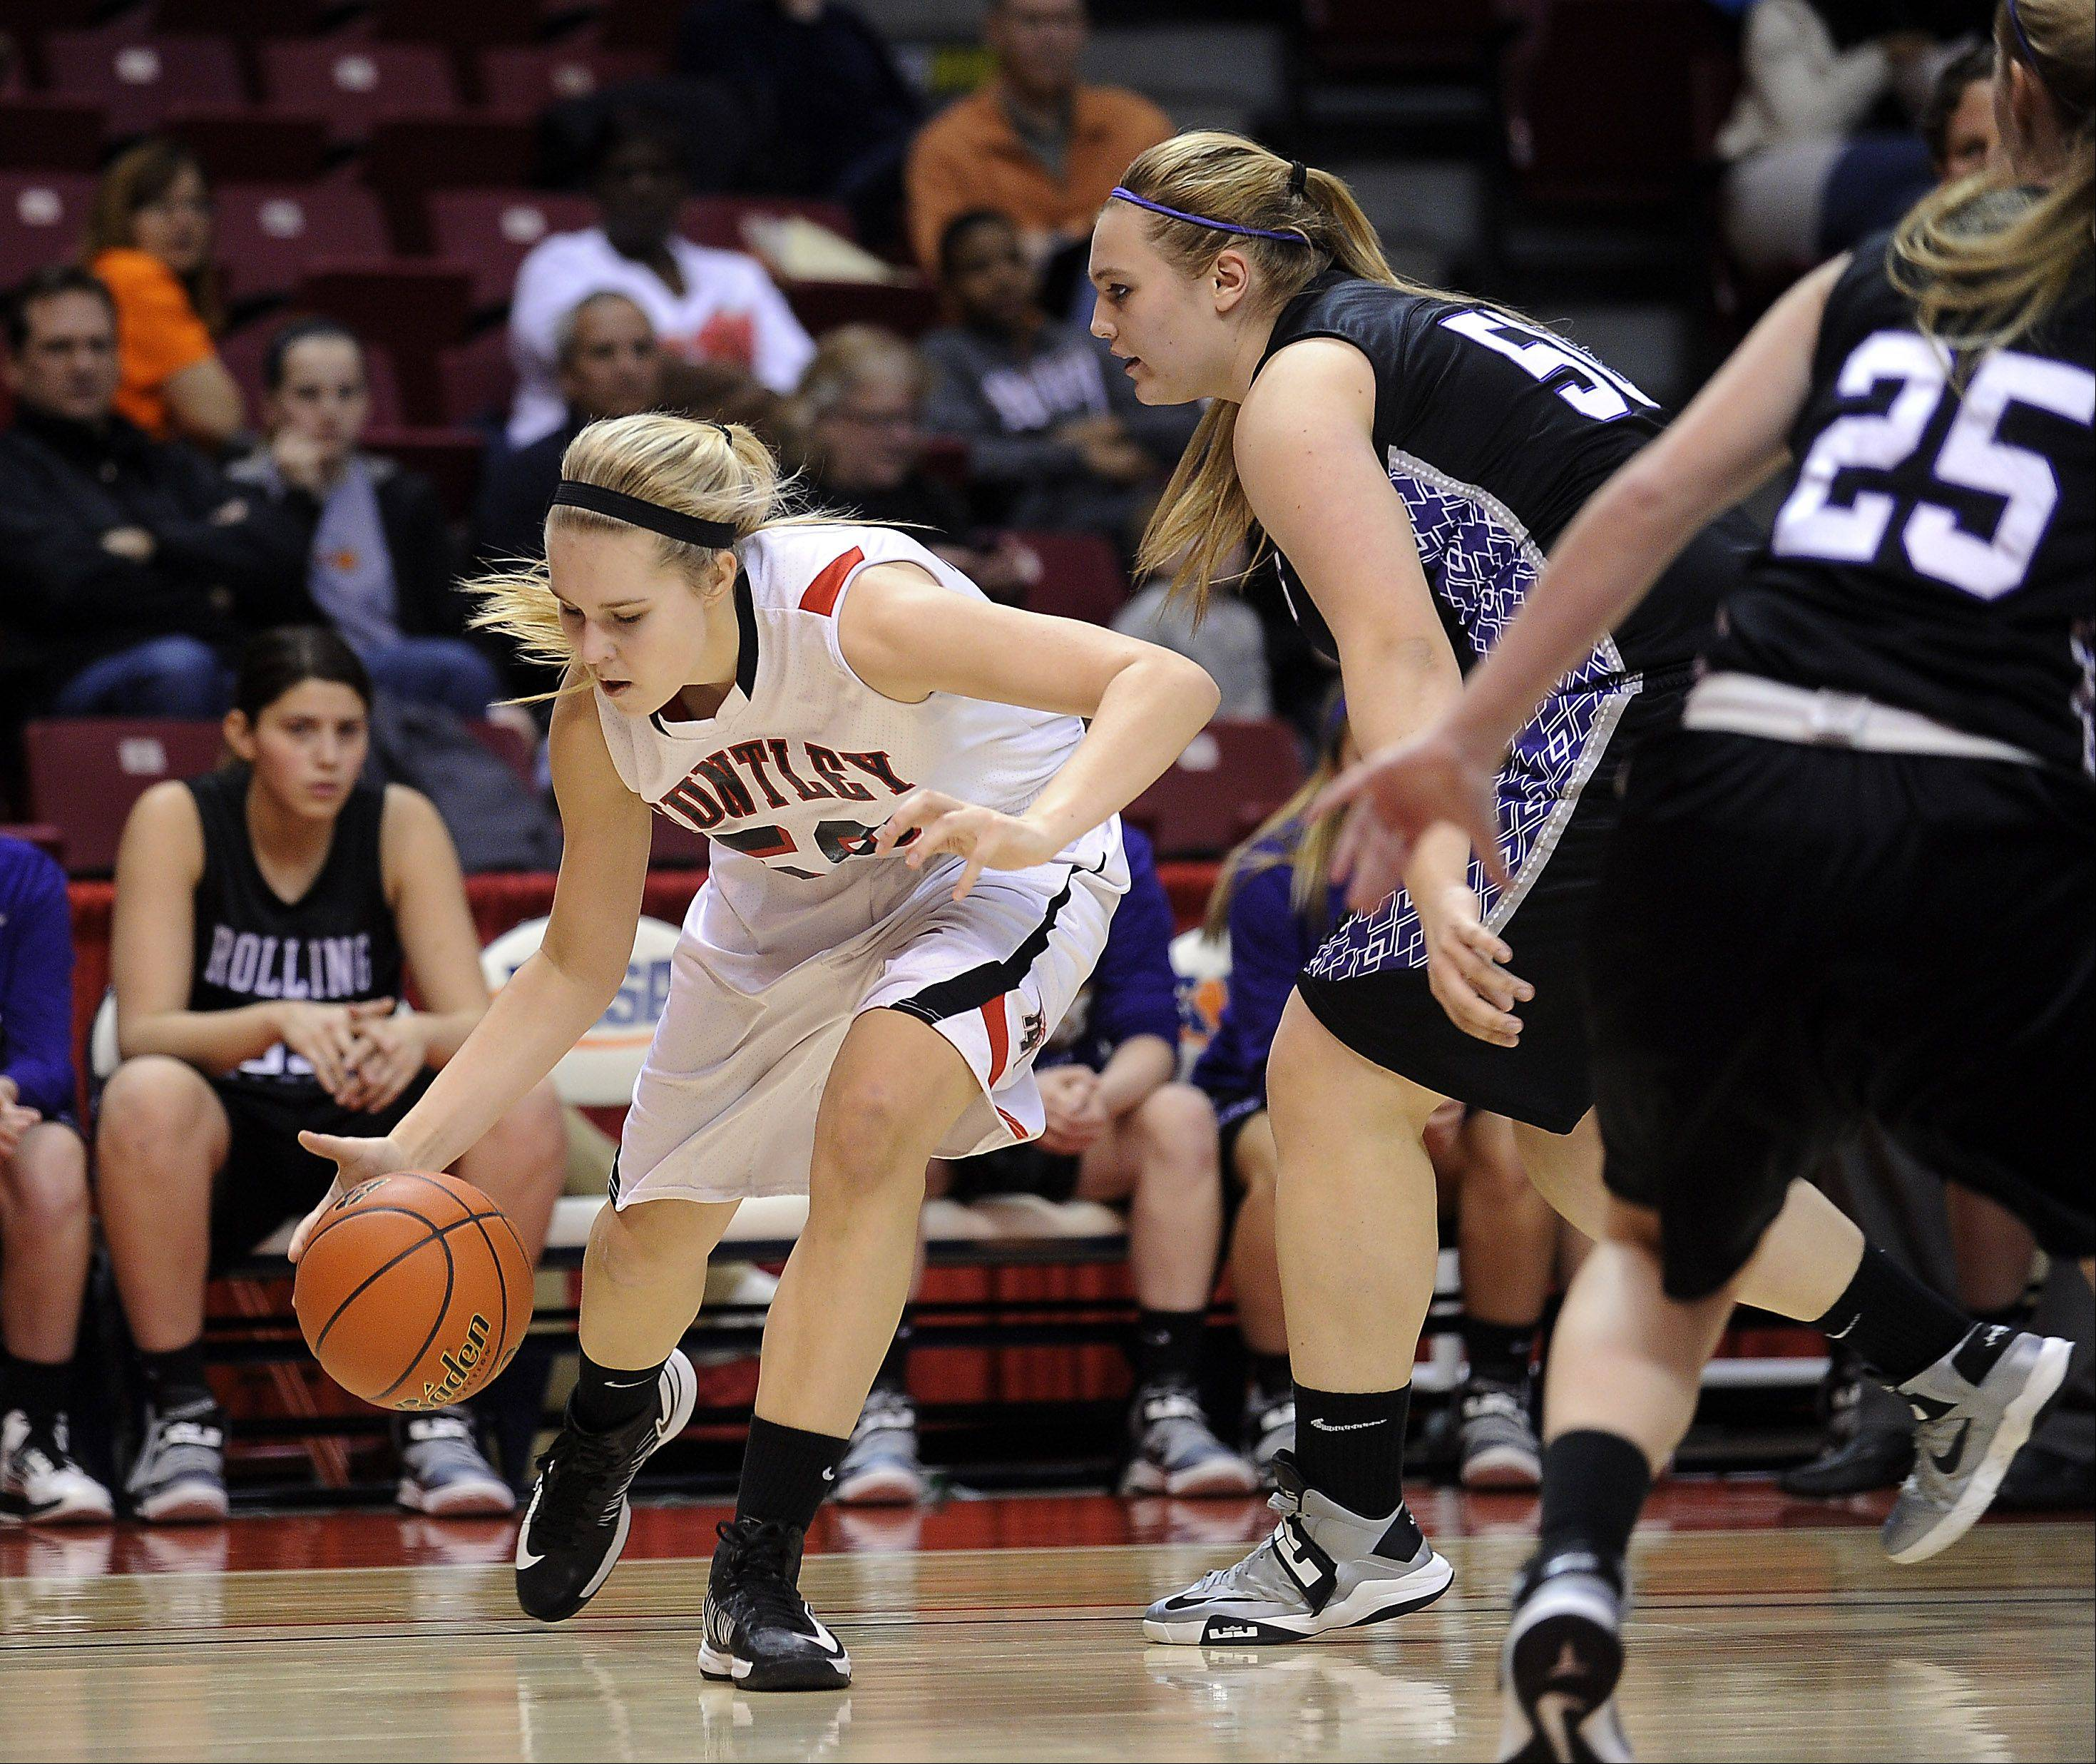 Huntley's Ali Andrews tries to get past Rolling Meadows' Morgan Keller and Allie Kemph.